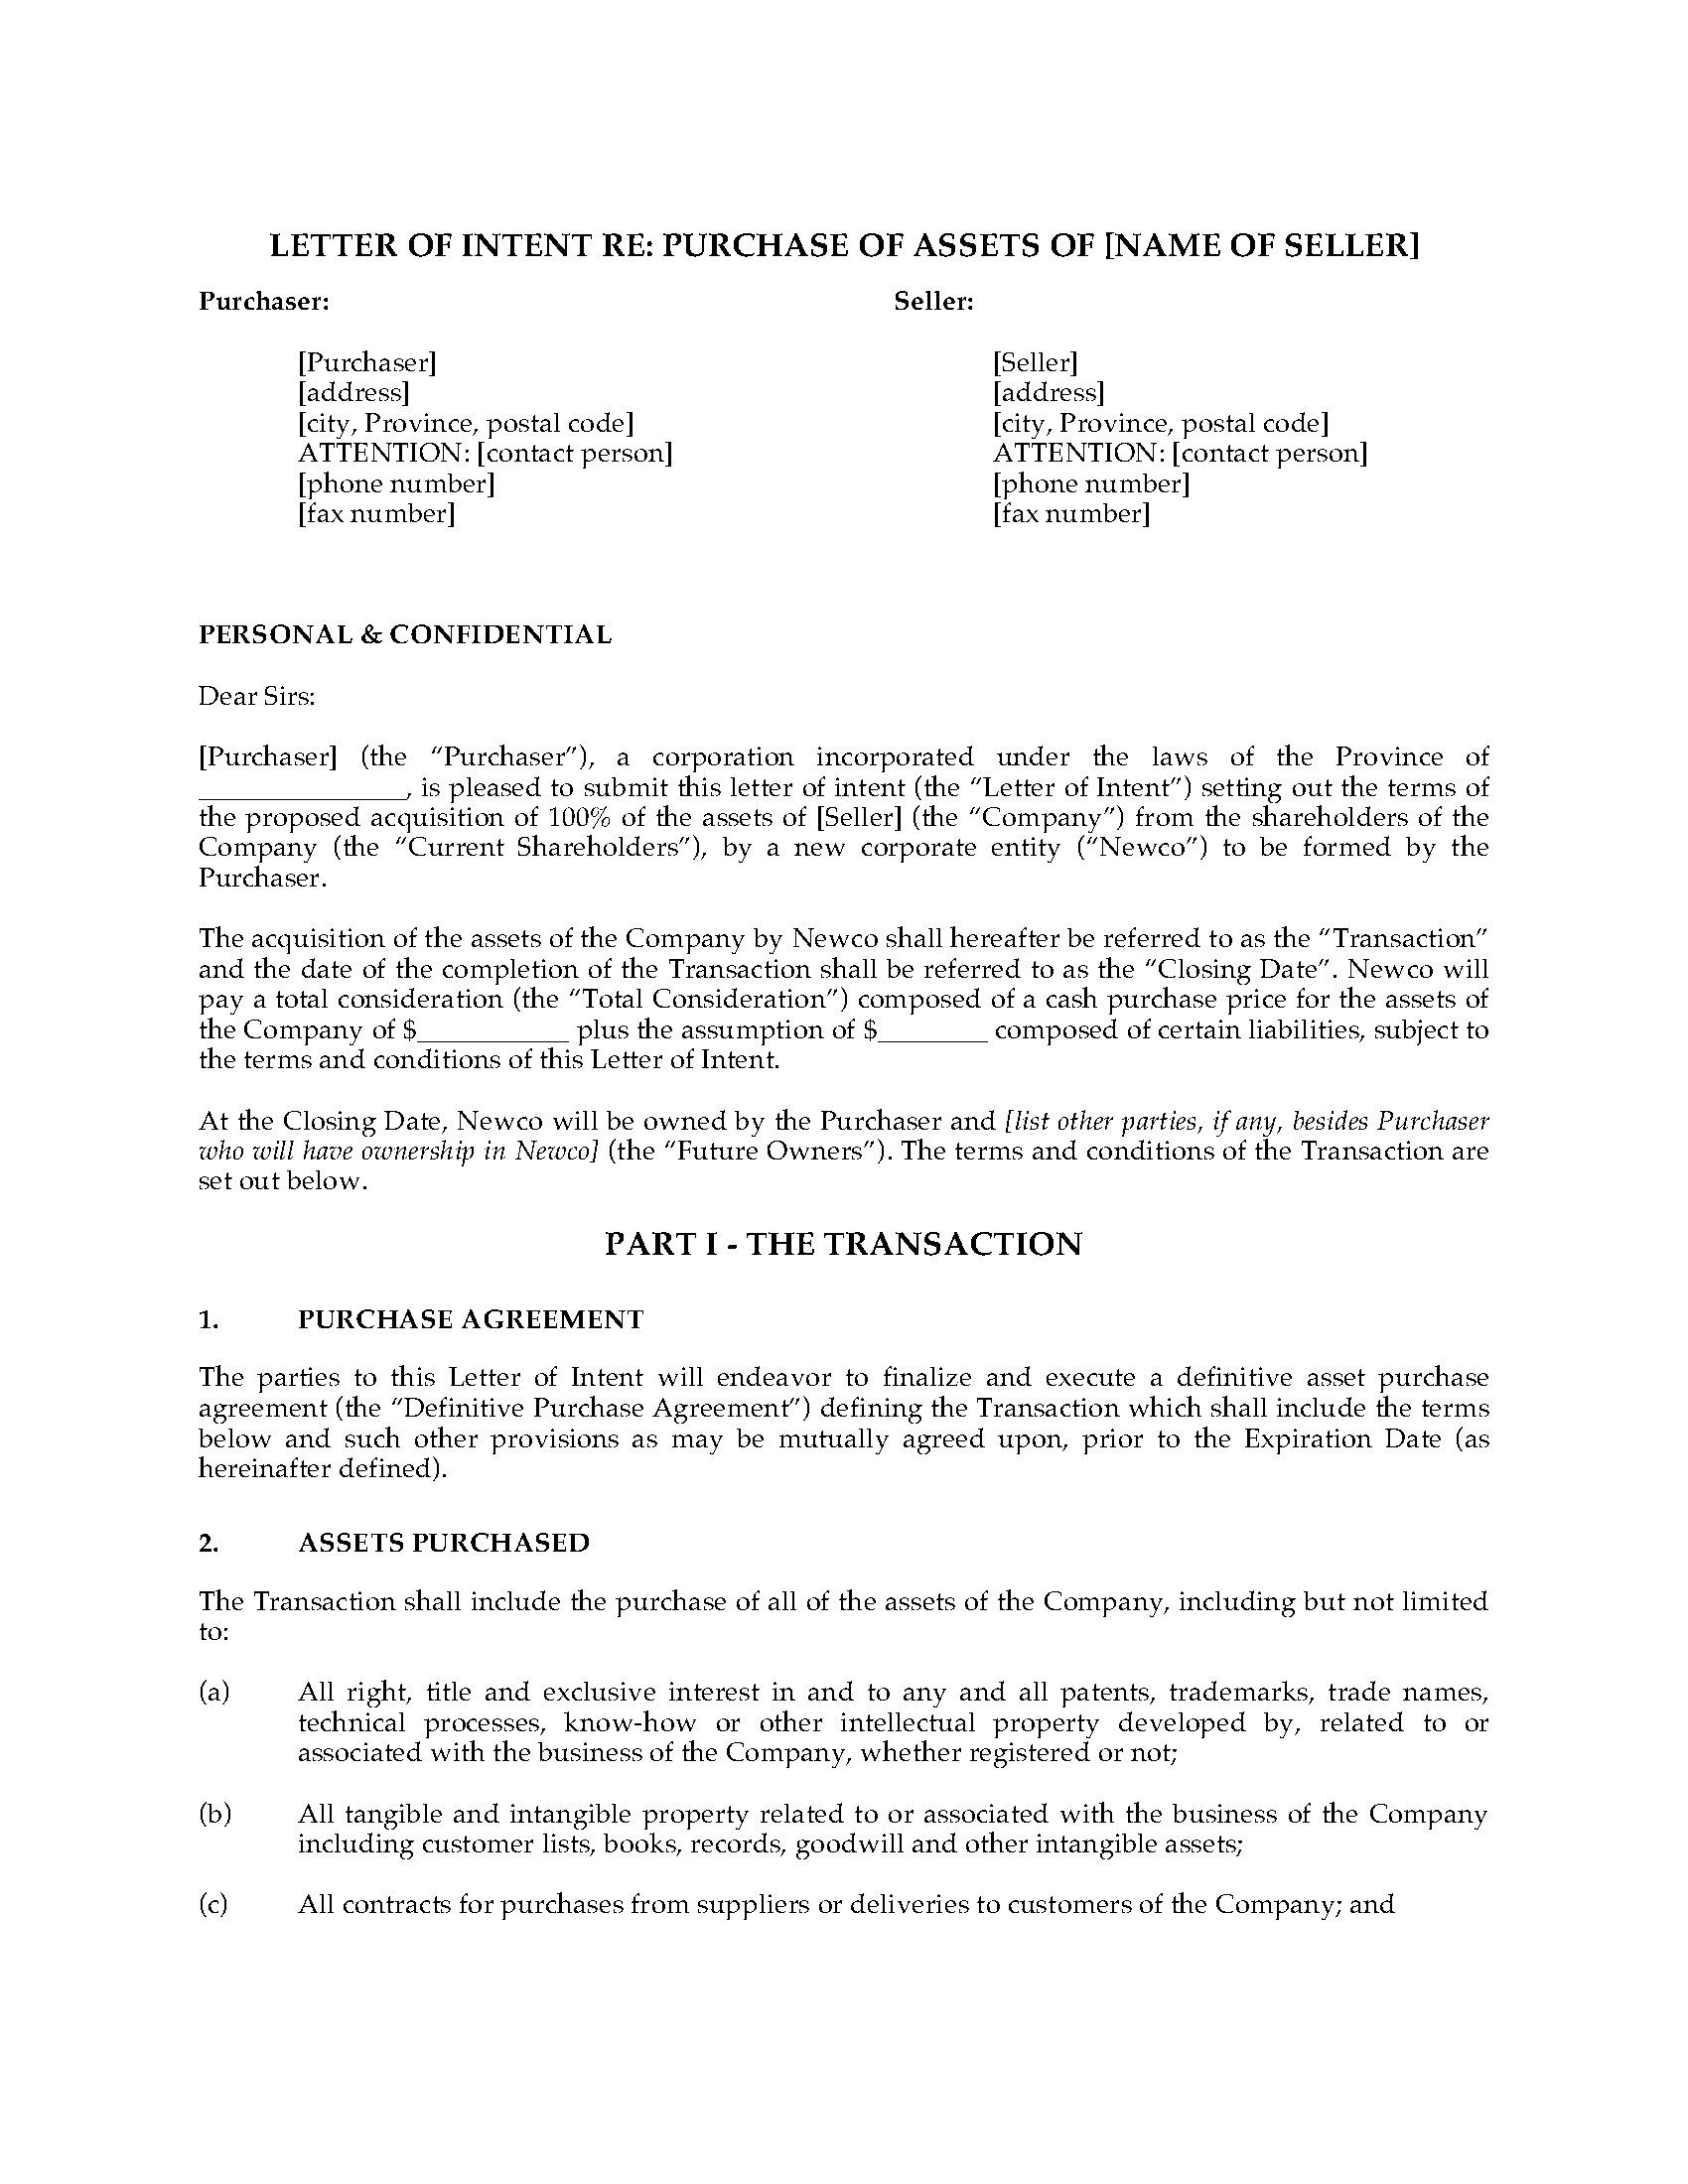 Joint Venture Letter Of Intent Template - form Of Letter Of Intent Acurnamedia